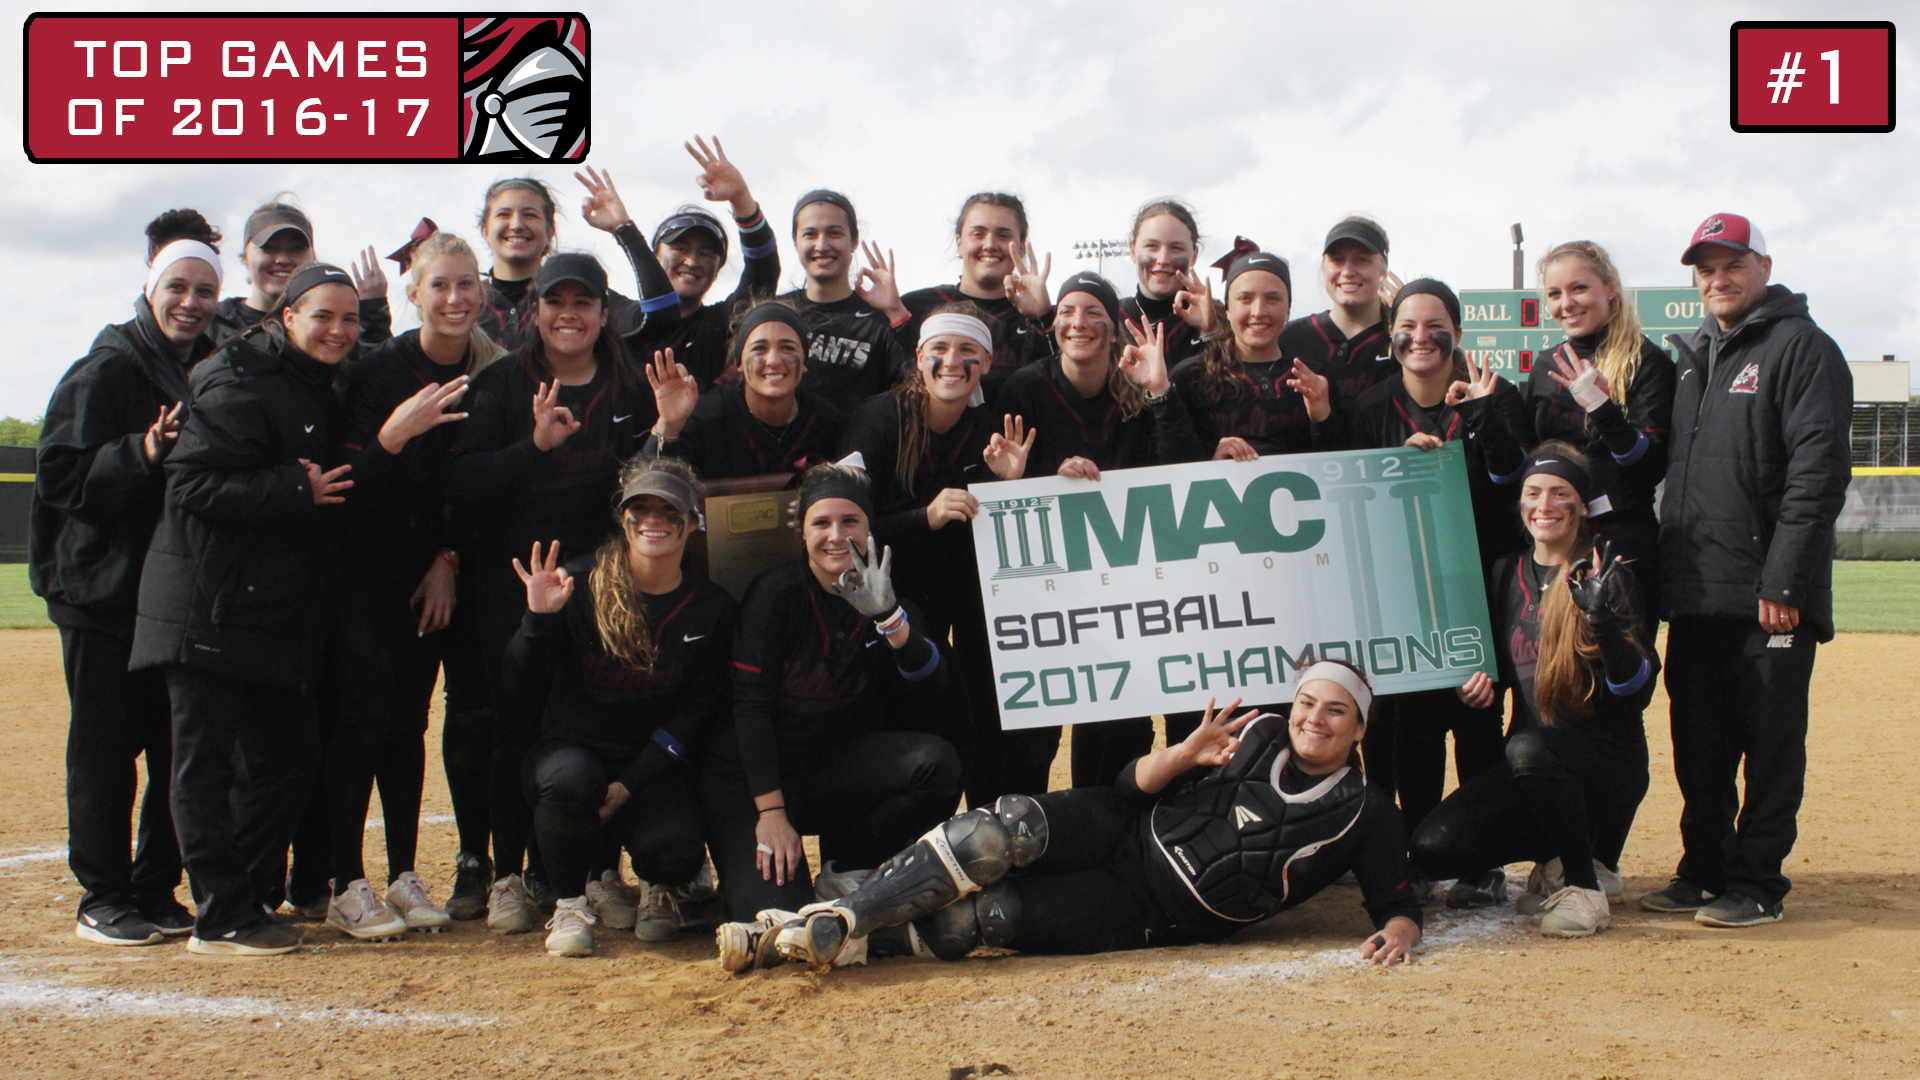 2016-17 Top Games: Softball Wins Three Games on Sunday to